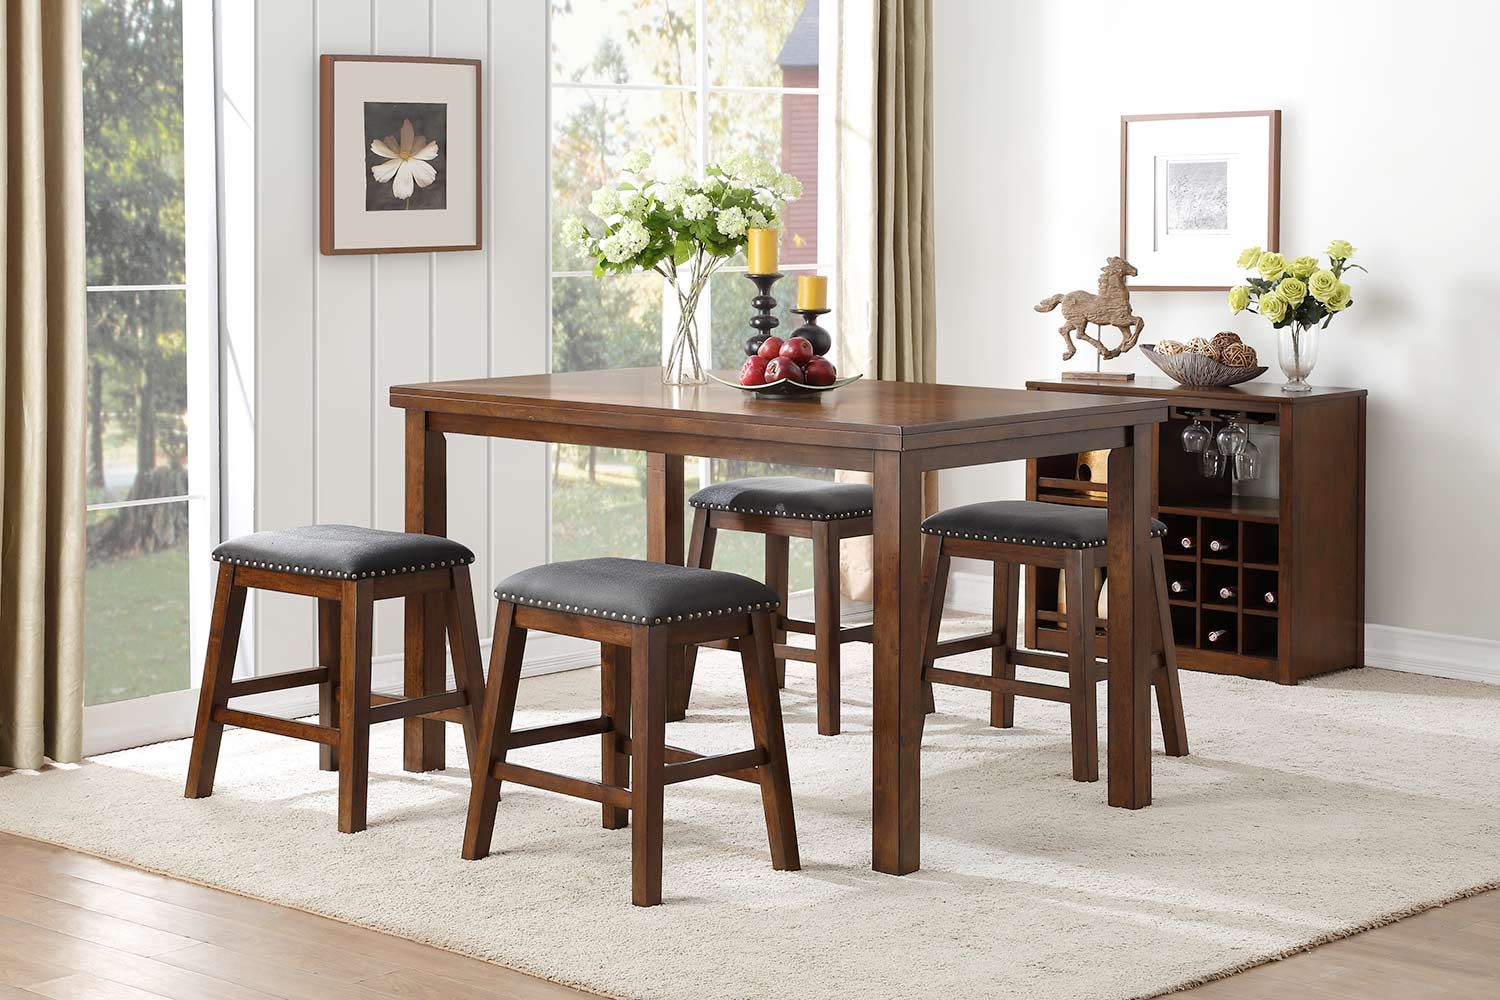 Homelegance Brindle Counter Height Dining Set - Brown